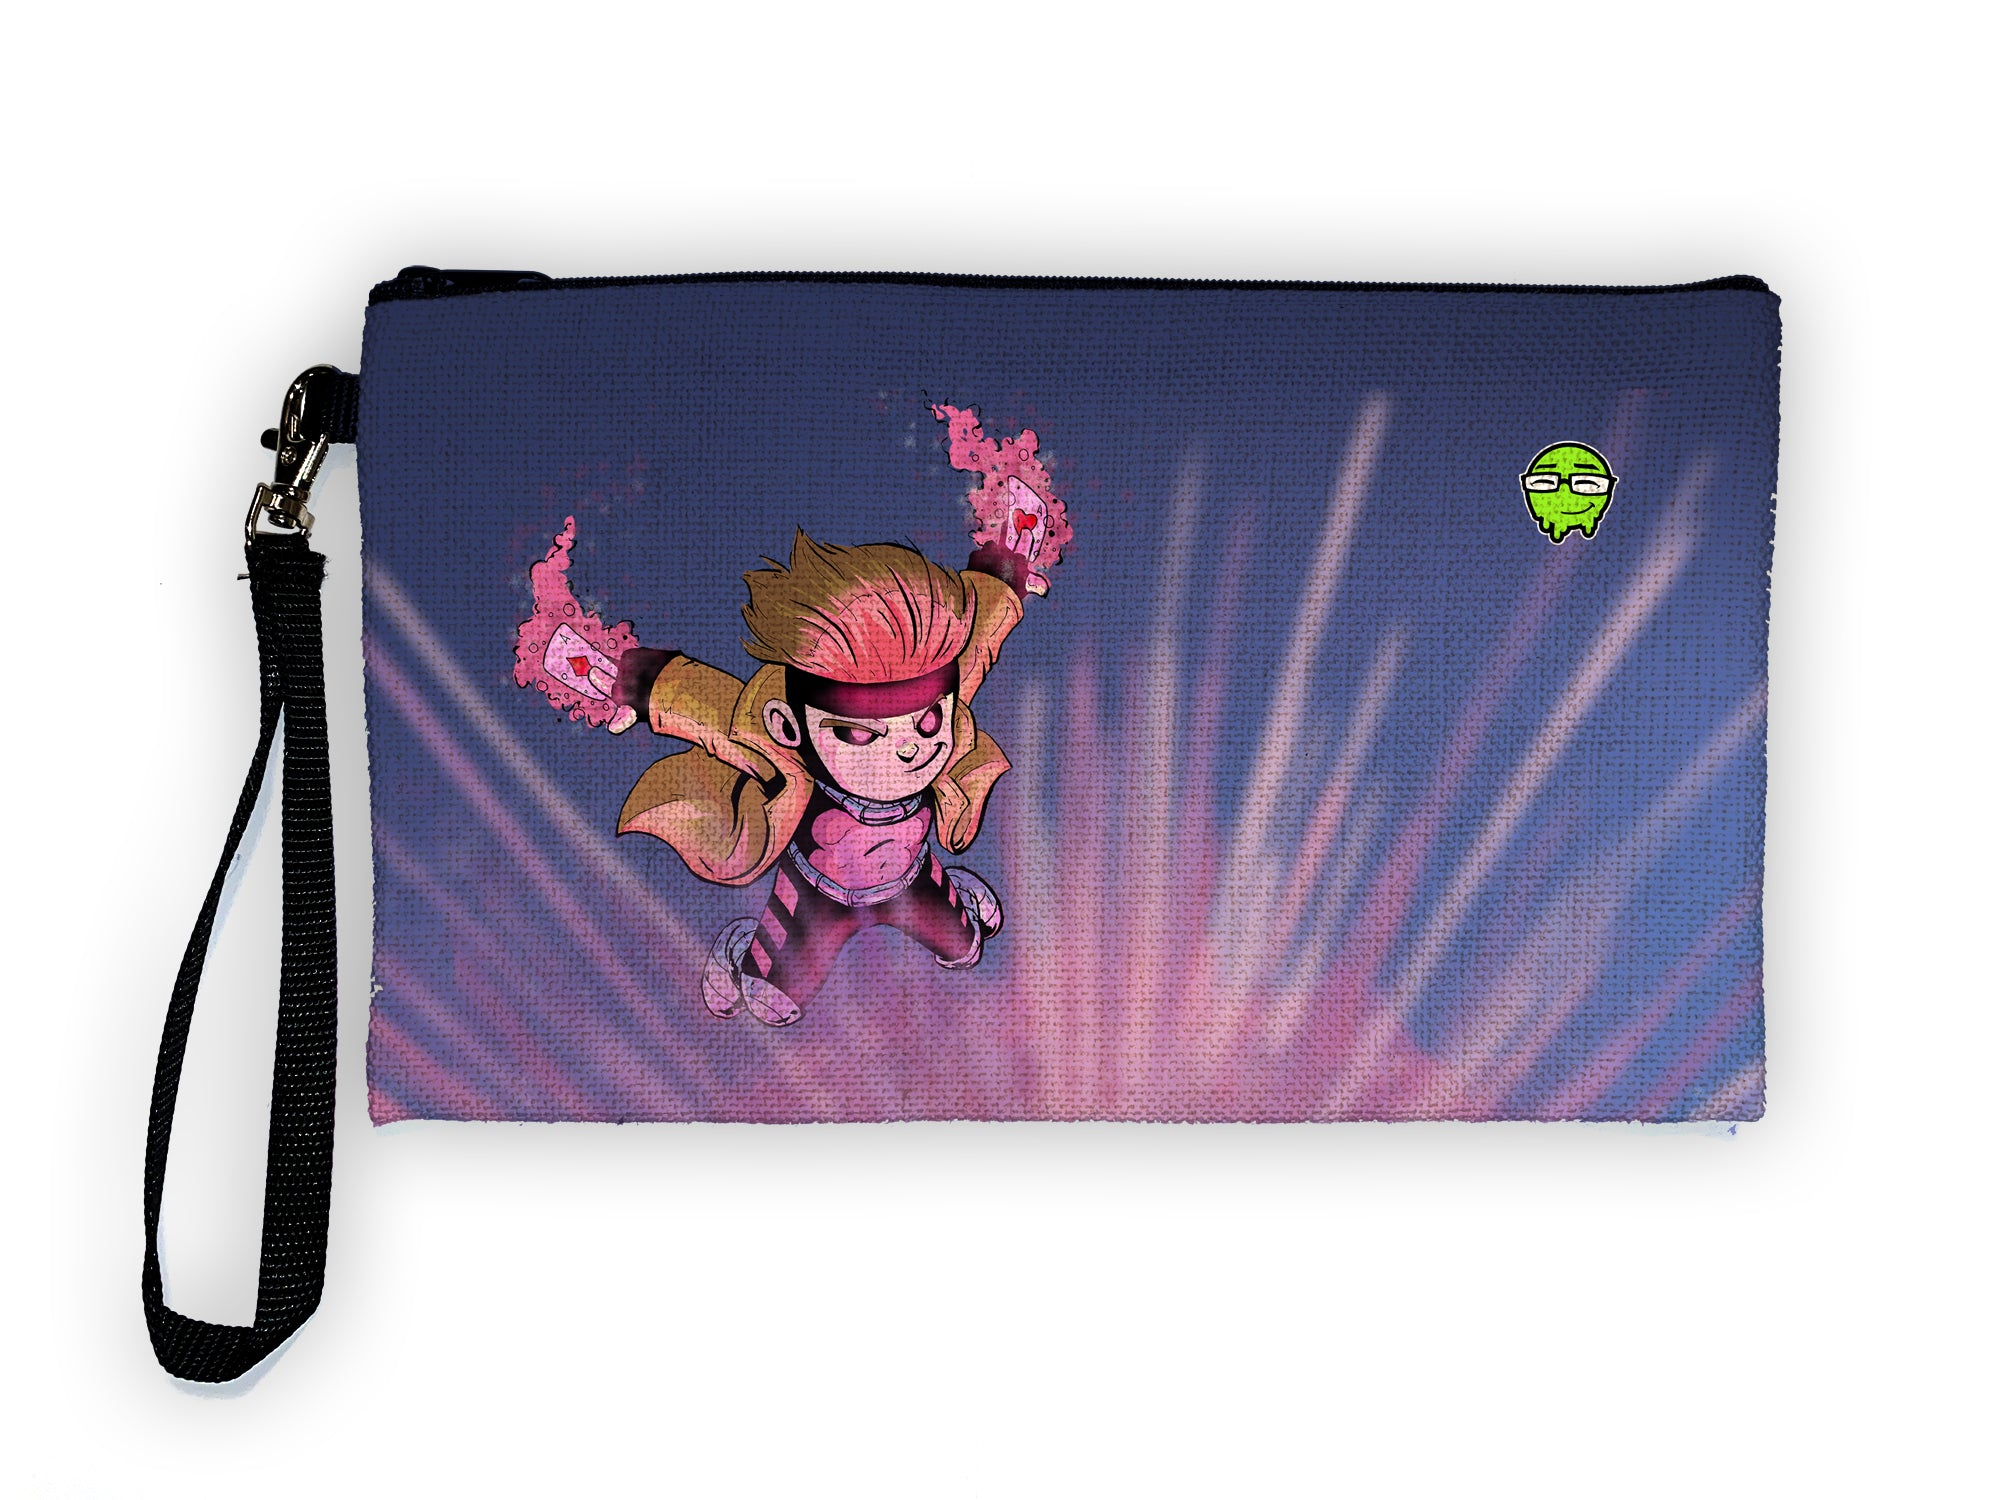 Gambit - Meents Illustrated Authentic Large Pencil/Device Bag